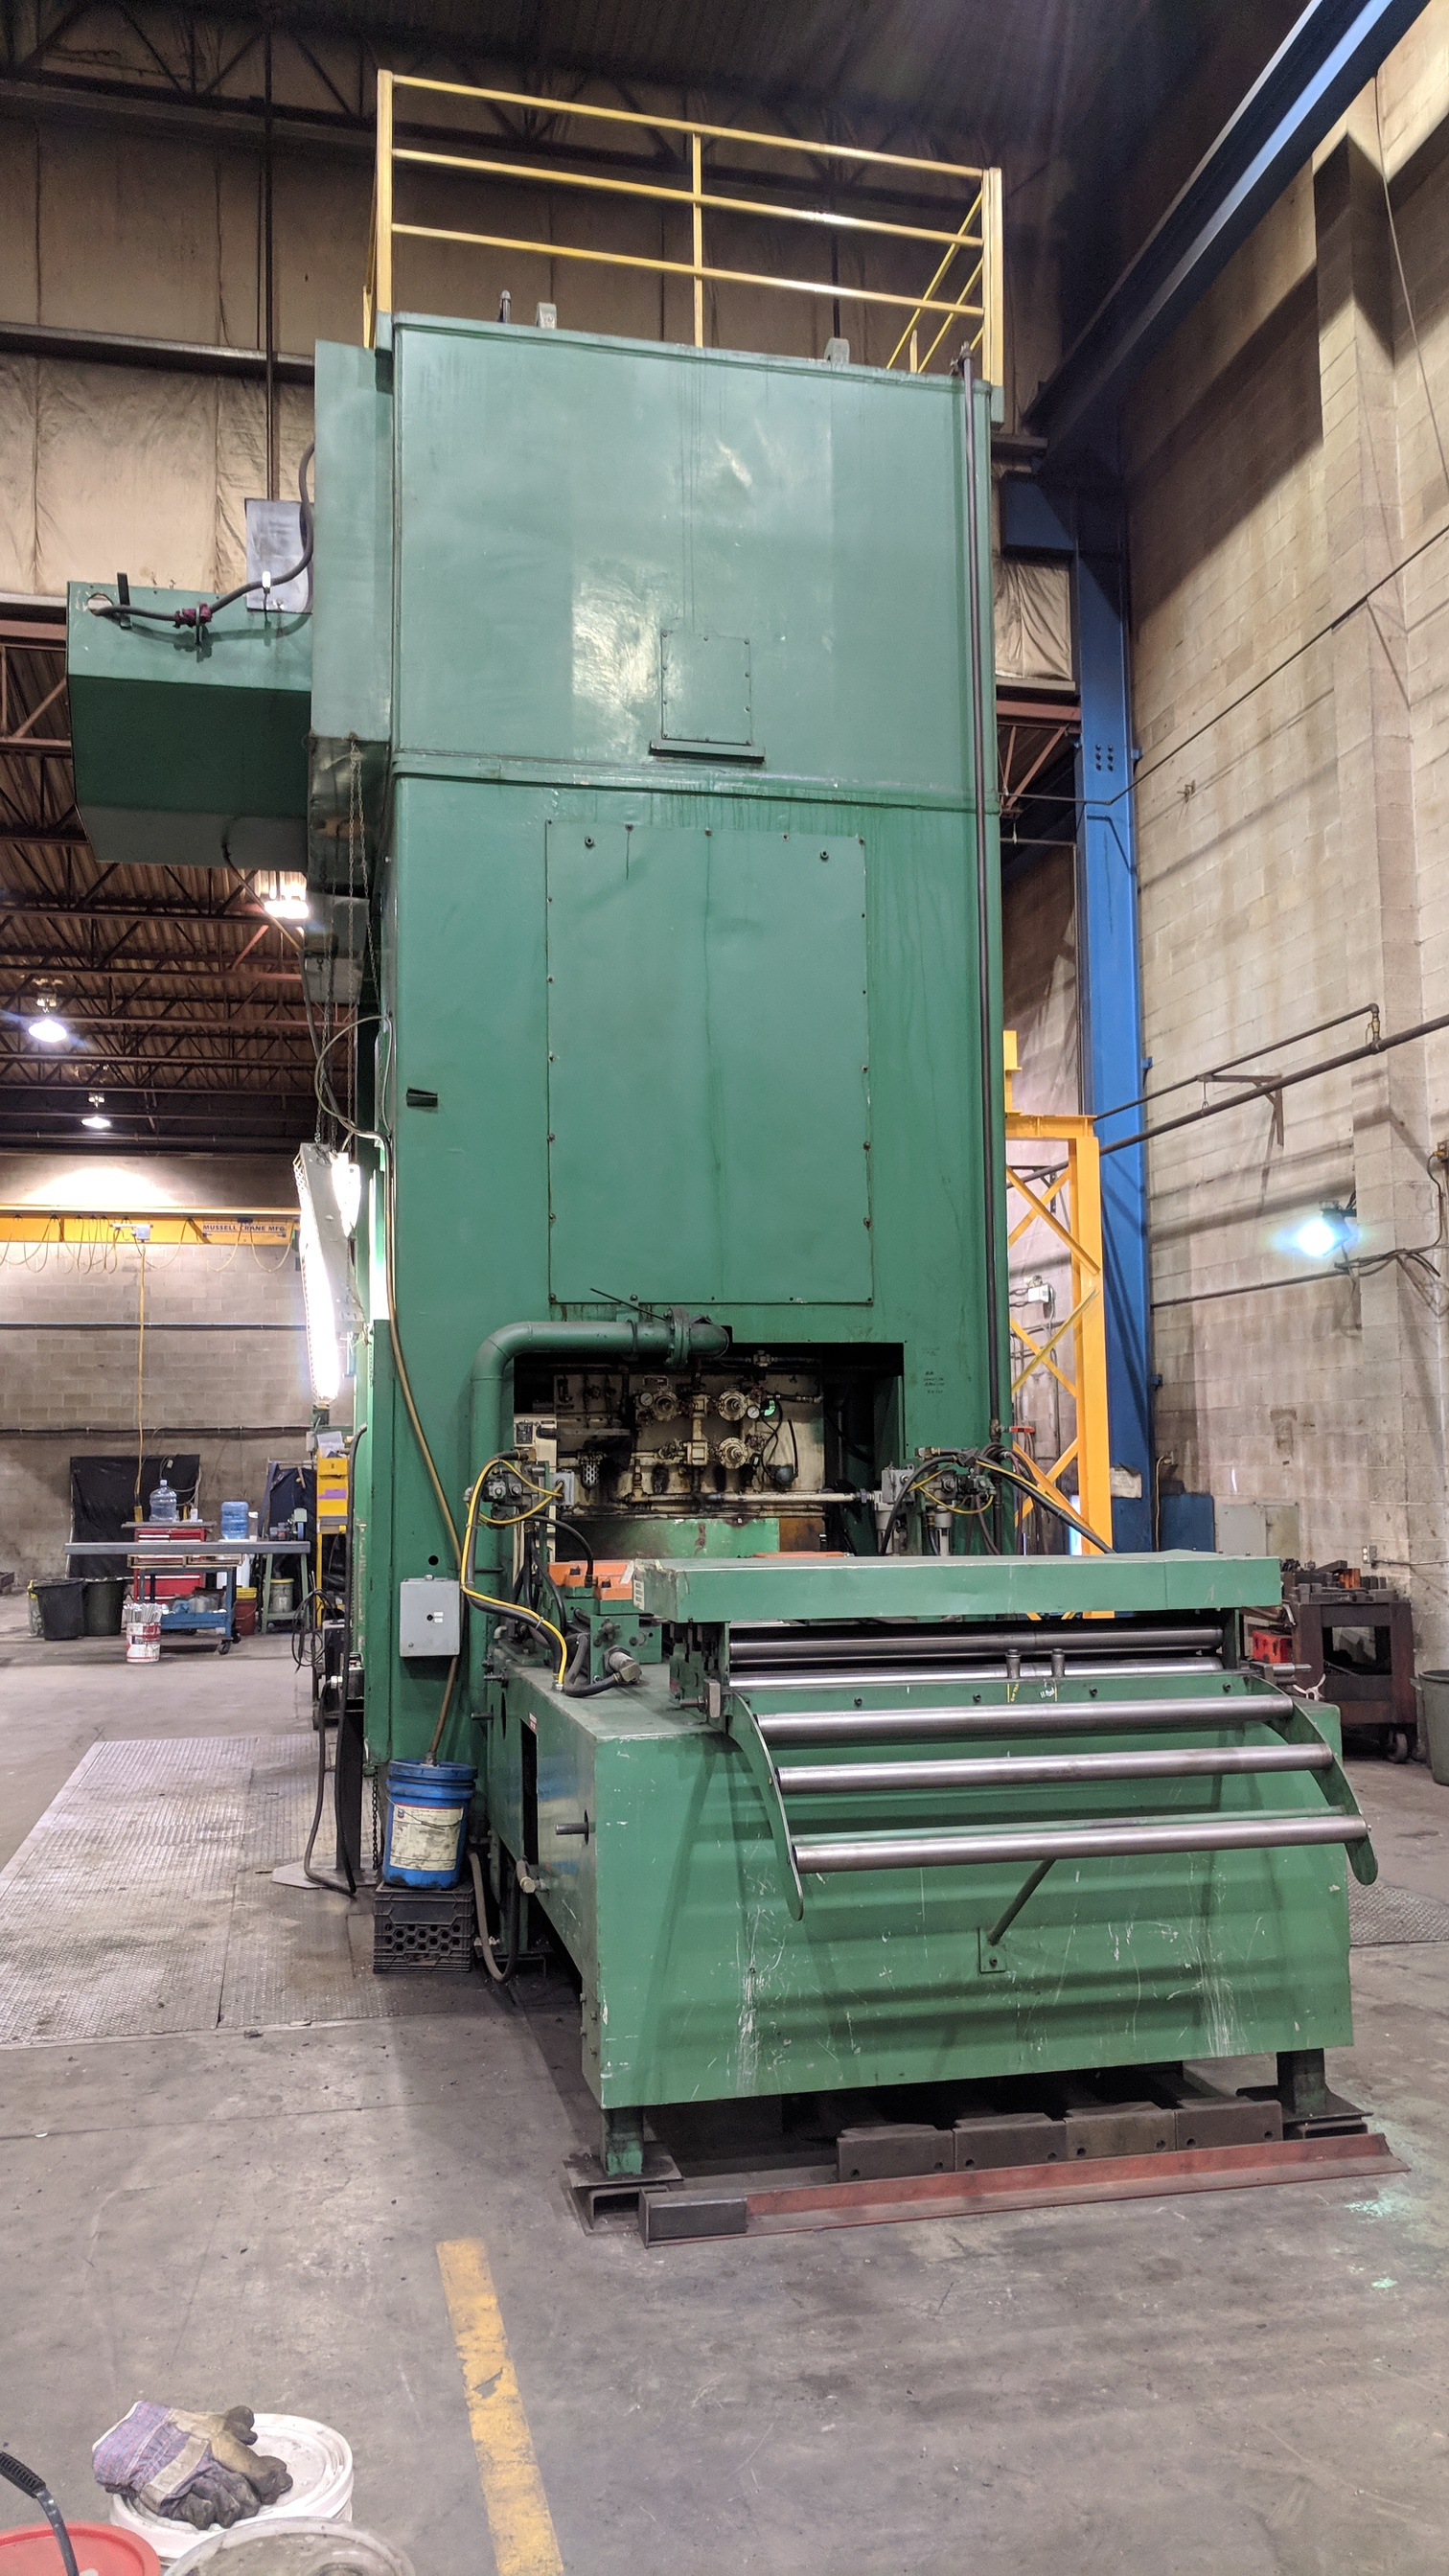 """BLISS SE4-600-108X72 600 TON CAPACITY STRAIGHT SIDE PRESS WITH MAGELIS 2000 PLC CONTROL, 108""""X72"""" - Image 6 of 21"""